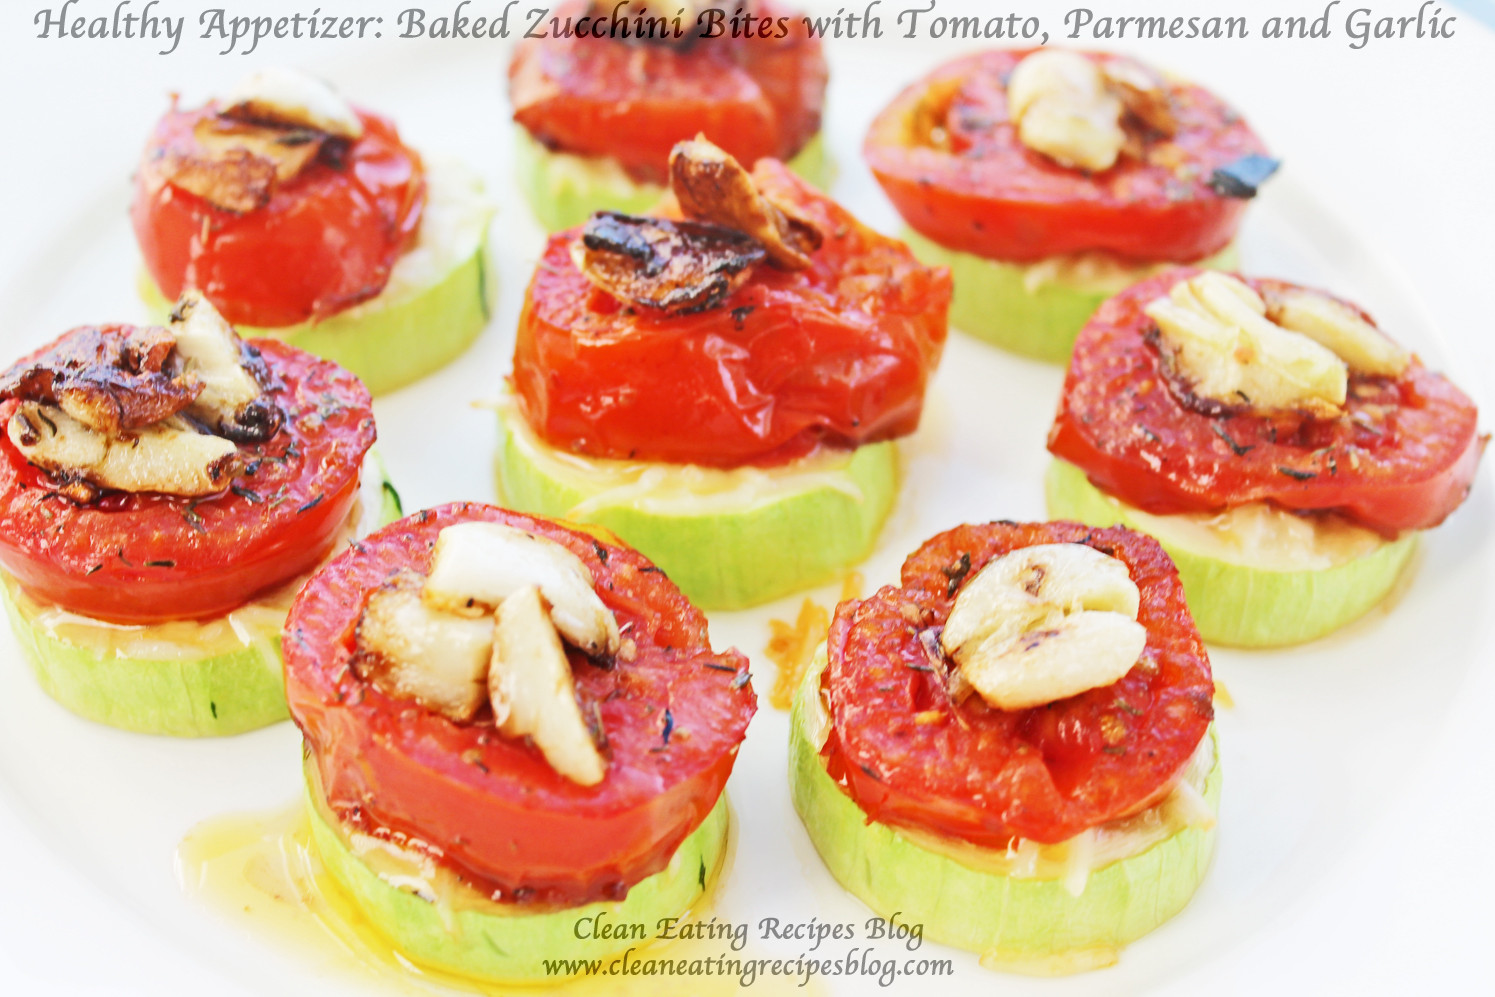 Healthy Appetizers Recipes  Healthy Appetizer Baked Zucchini Bite